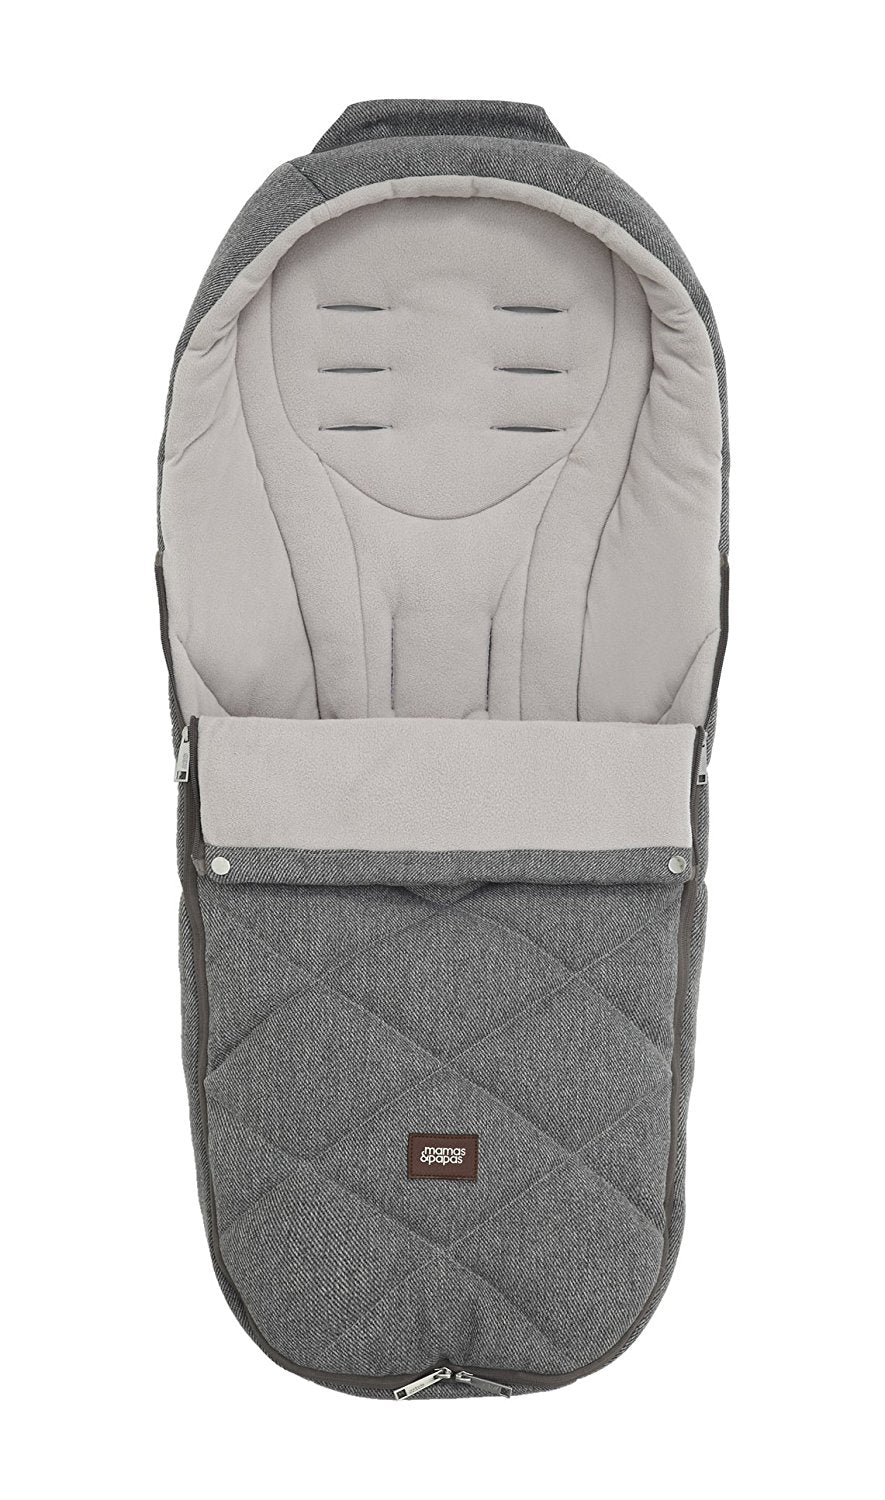 Mamas & Papas Footmuff Cold Weather Plus - Grey Twill